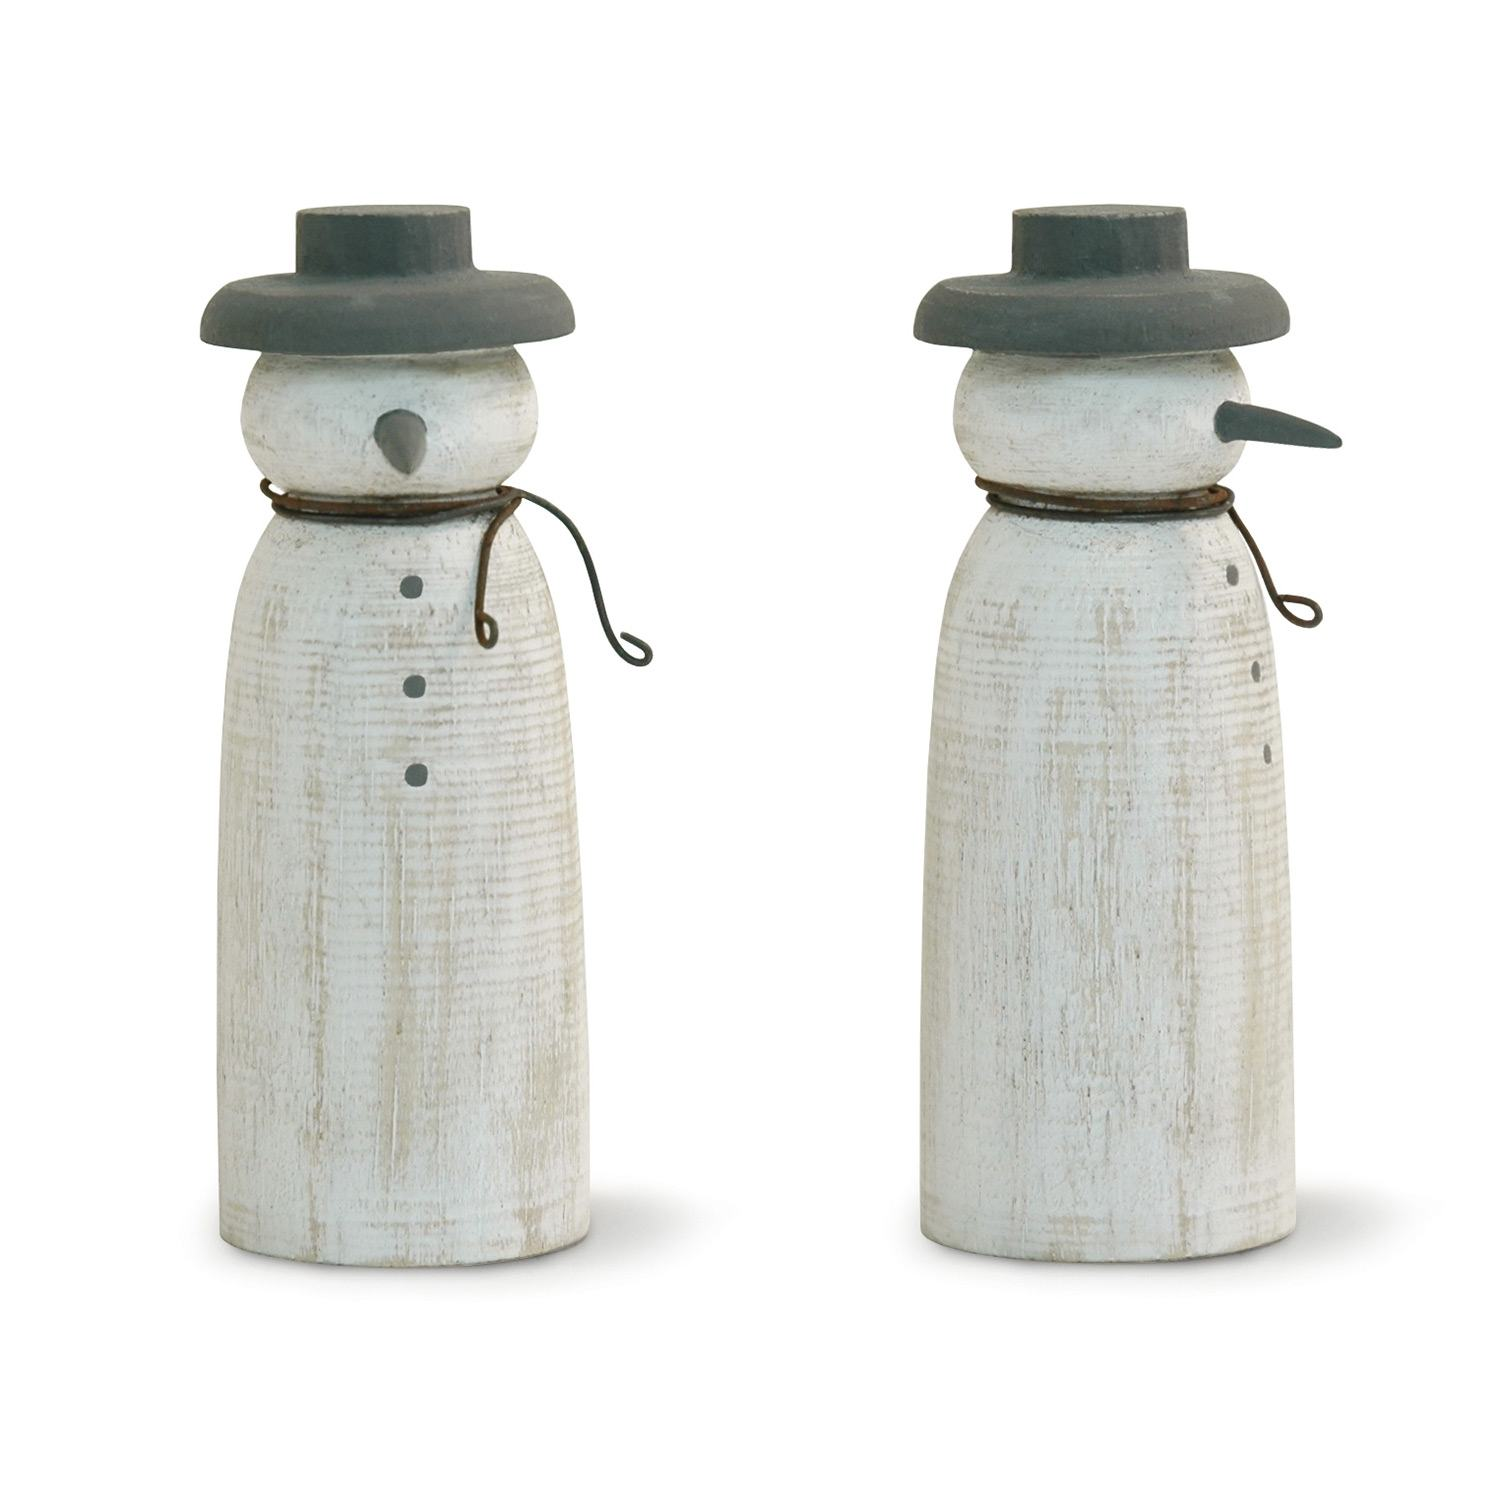 East Of India Large Wooden Snowman Temptation Gifts